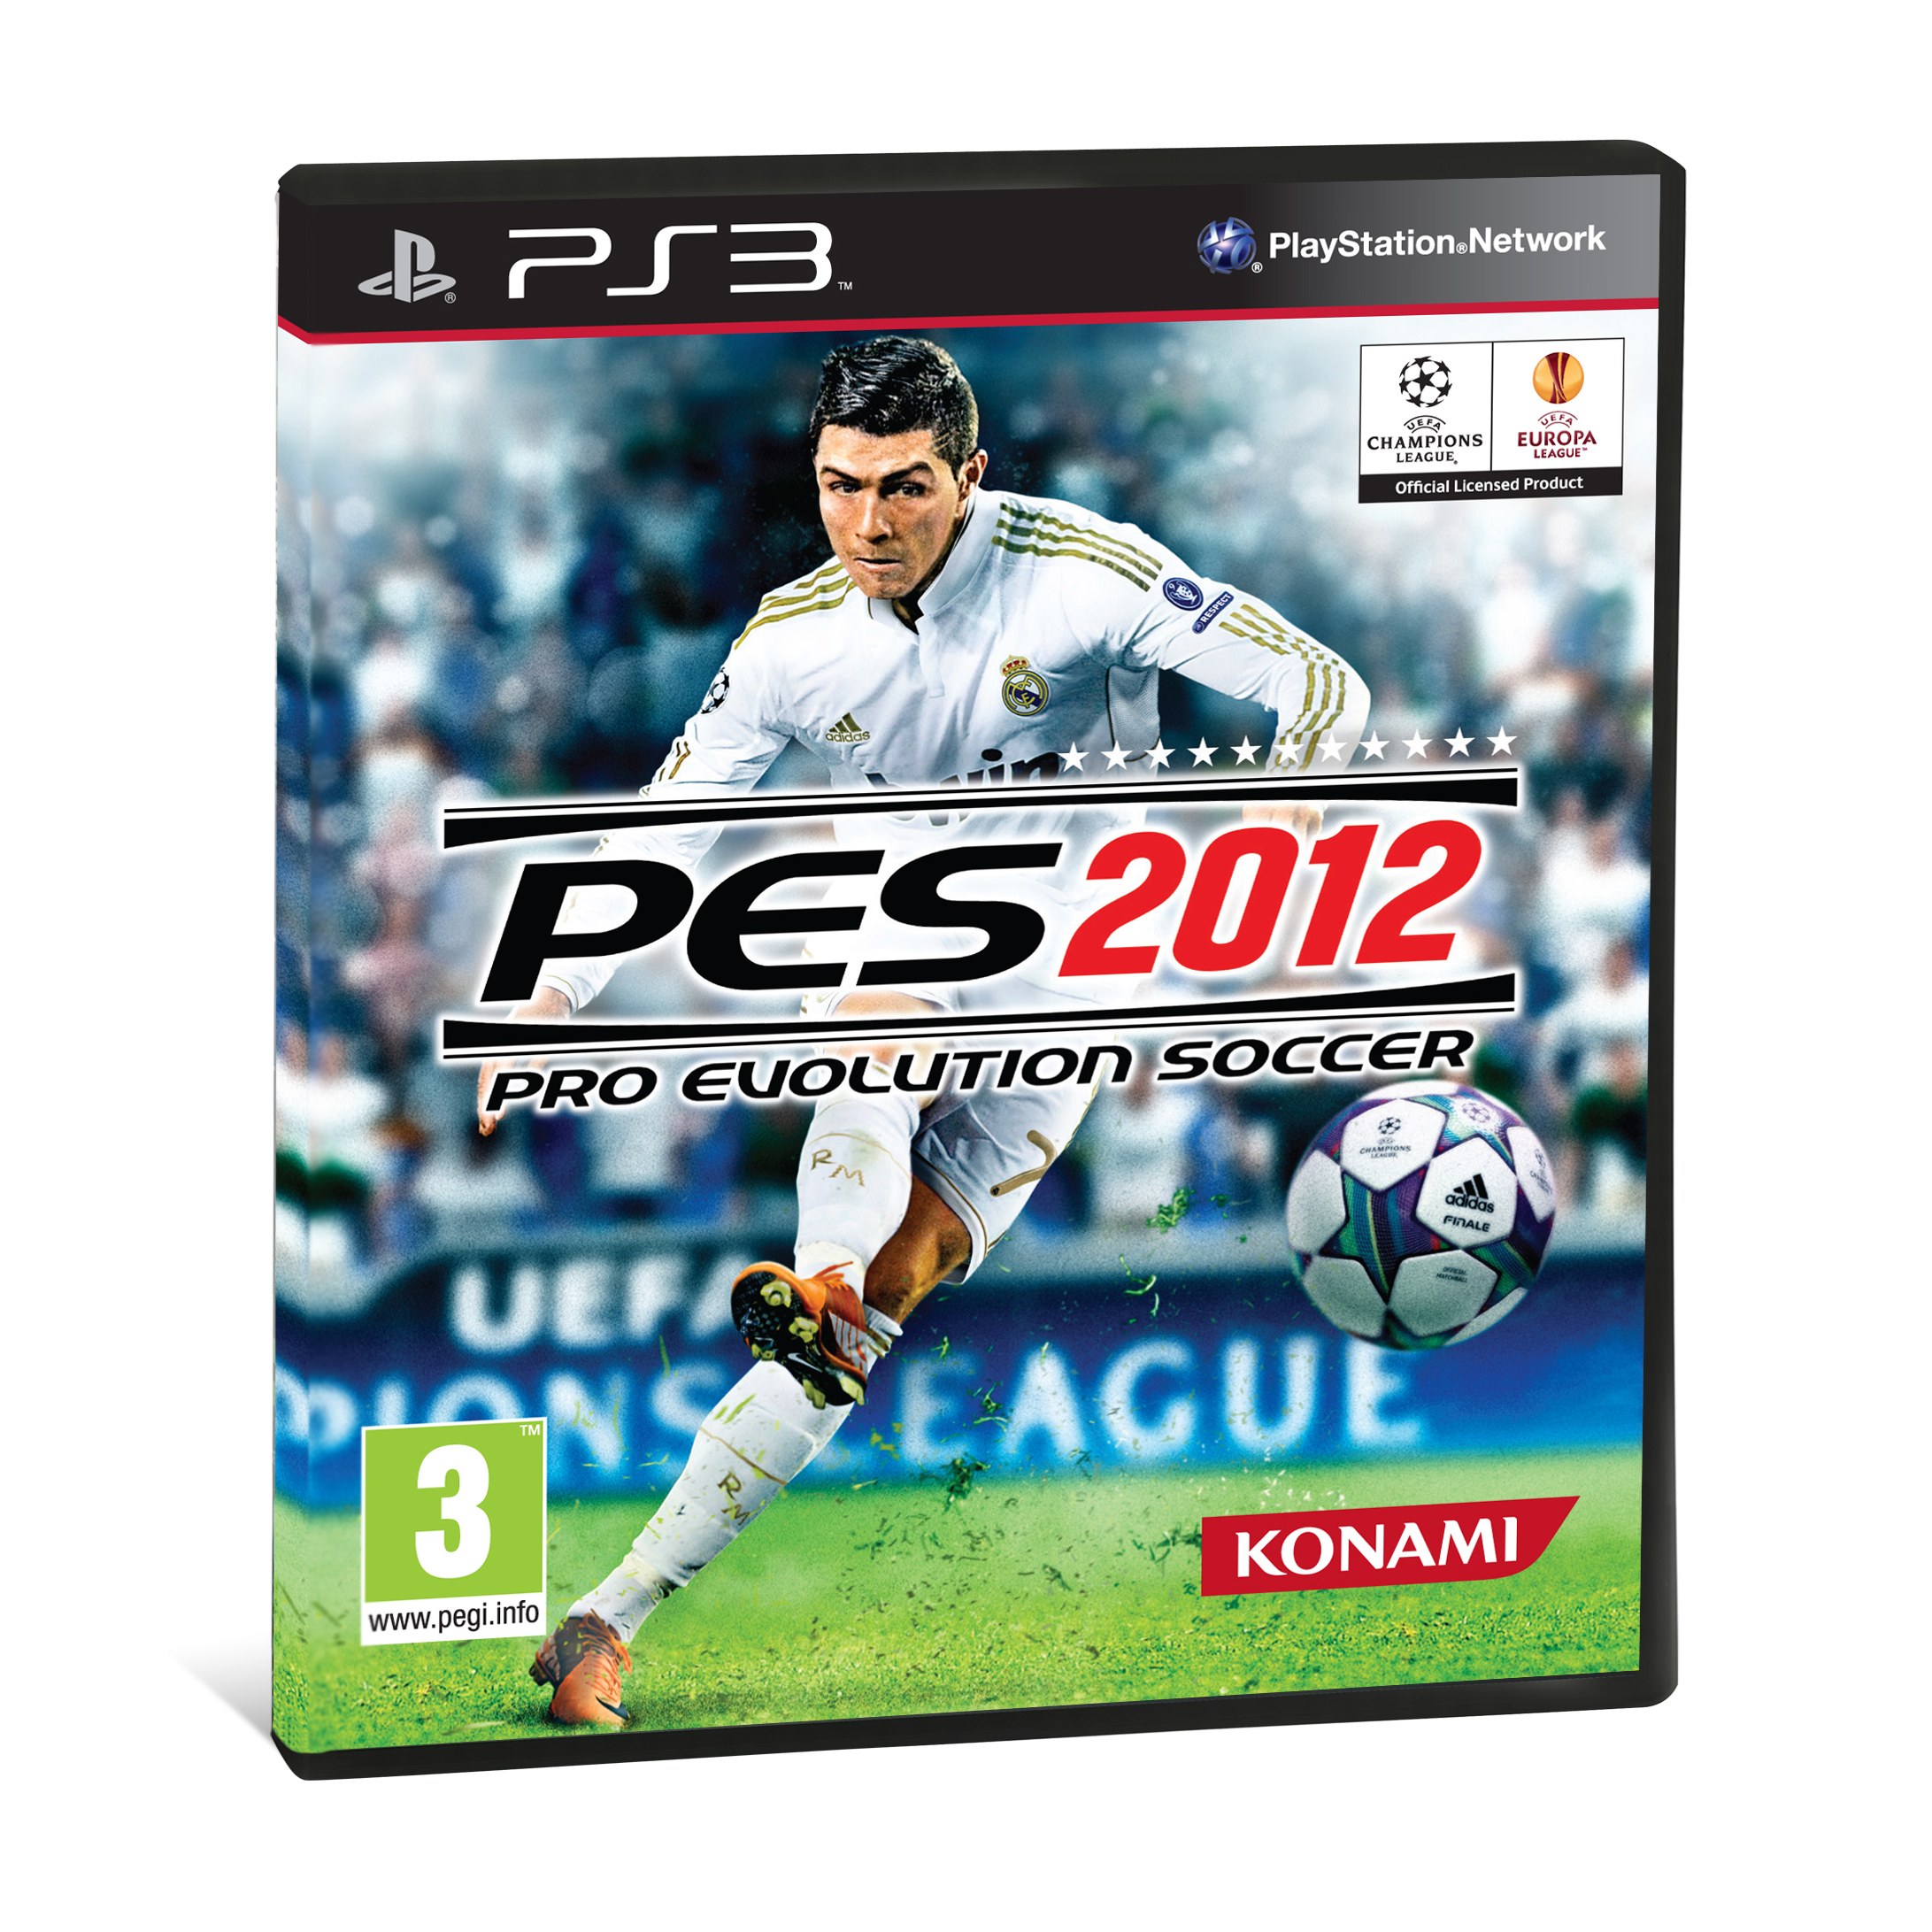 Pro Evolution Soccer 2012 - PS3 (United Kingdom PAL Compatible Only)